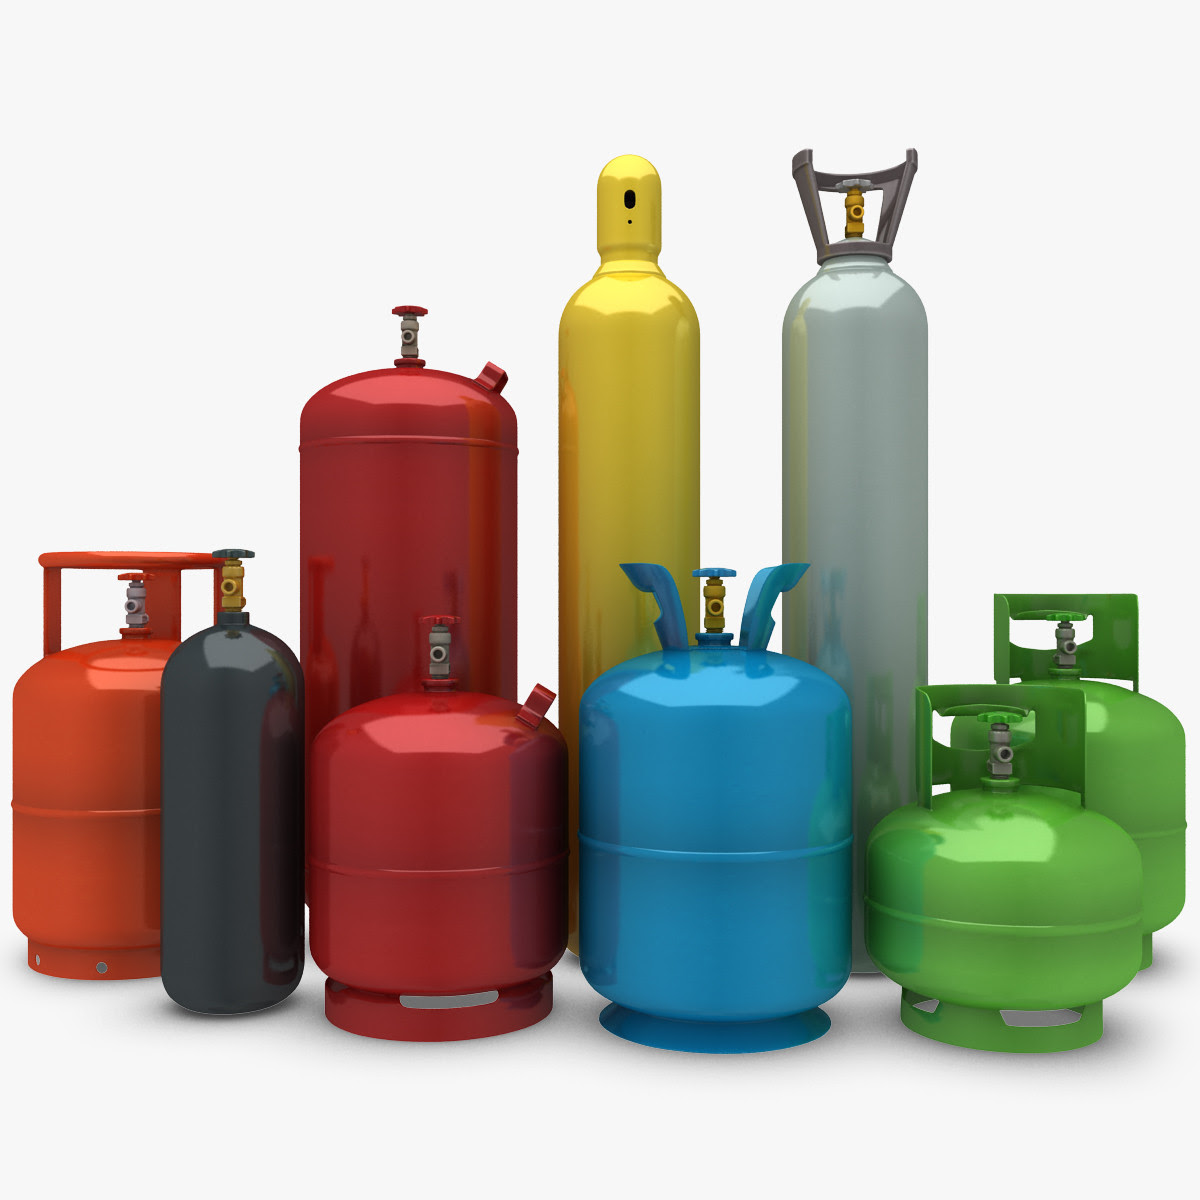 90% Of Gas Cylinders In Nigeria Are Expired - Federal ...